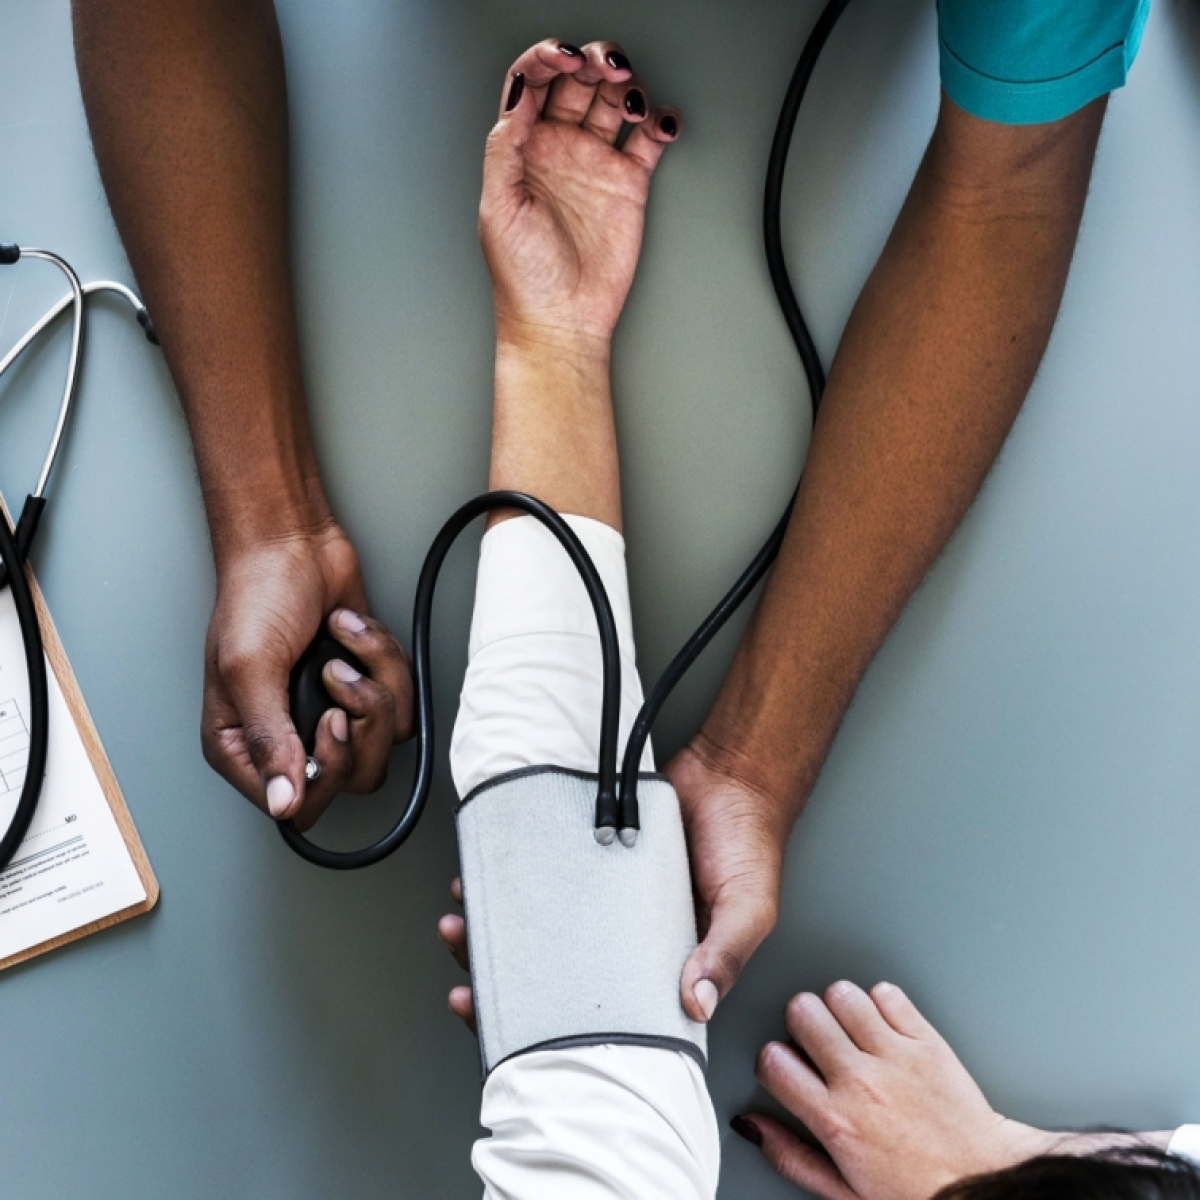 National Doctor's Day 2020: Patients grateful for healing touch and caring hand